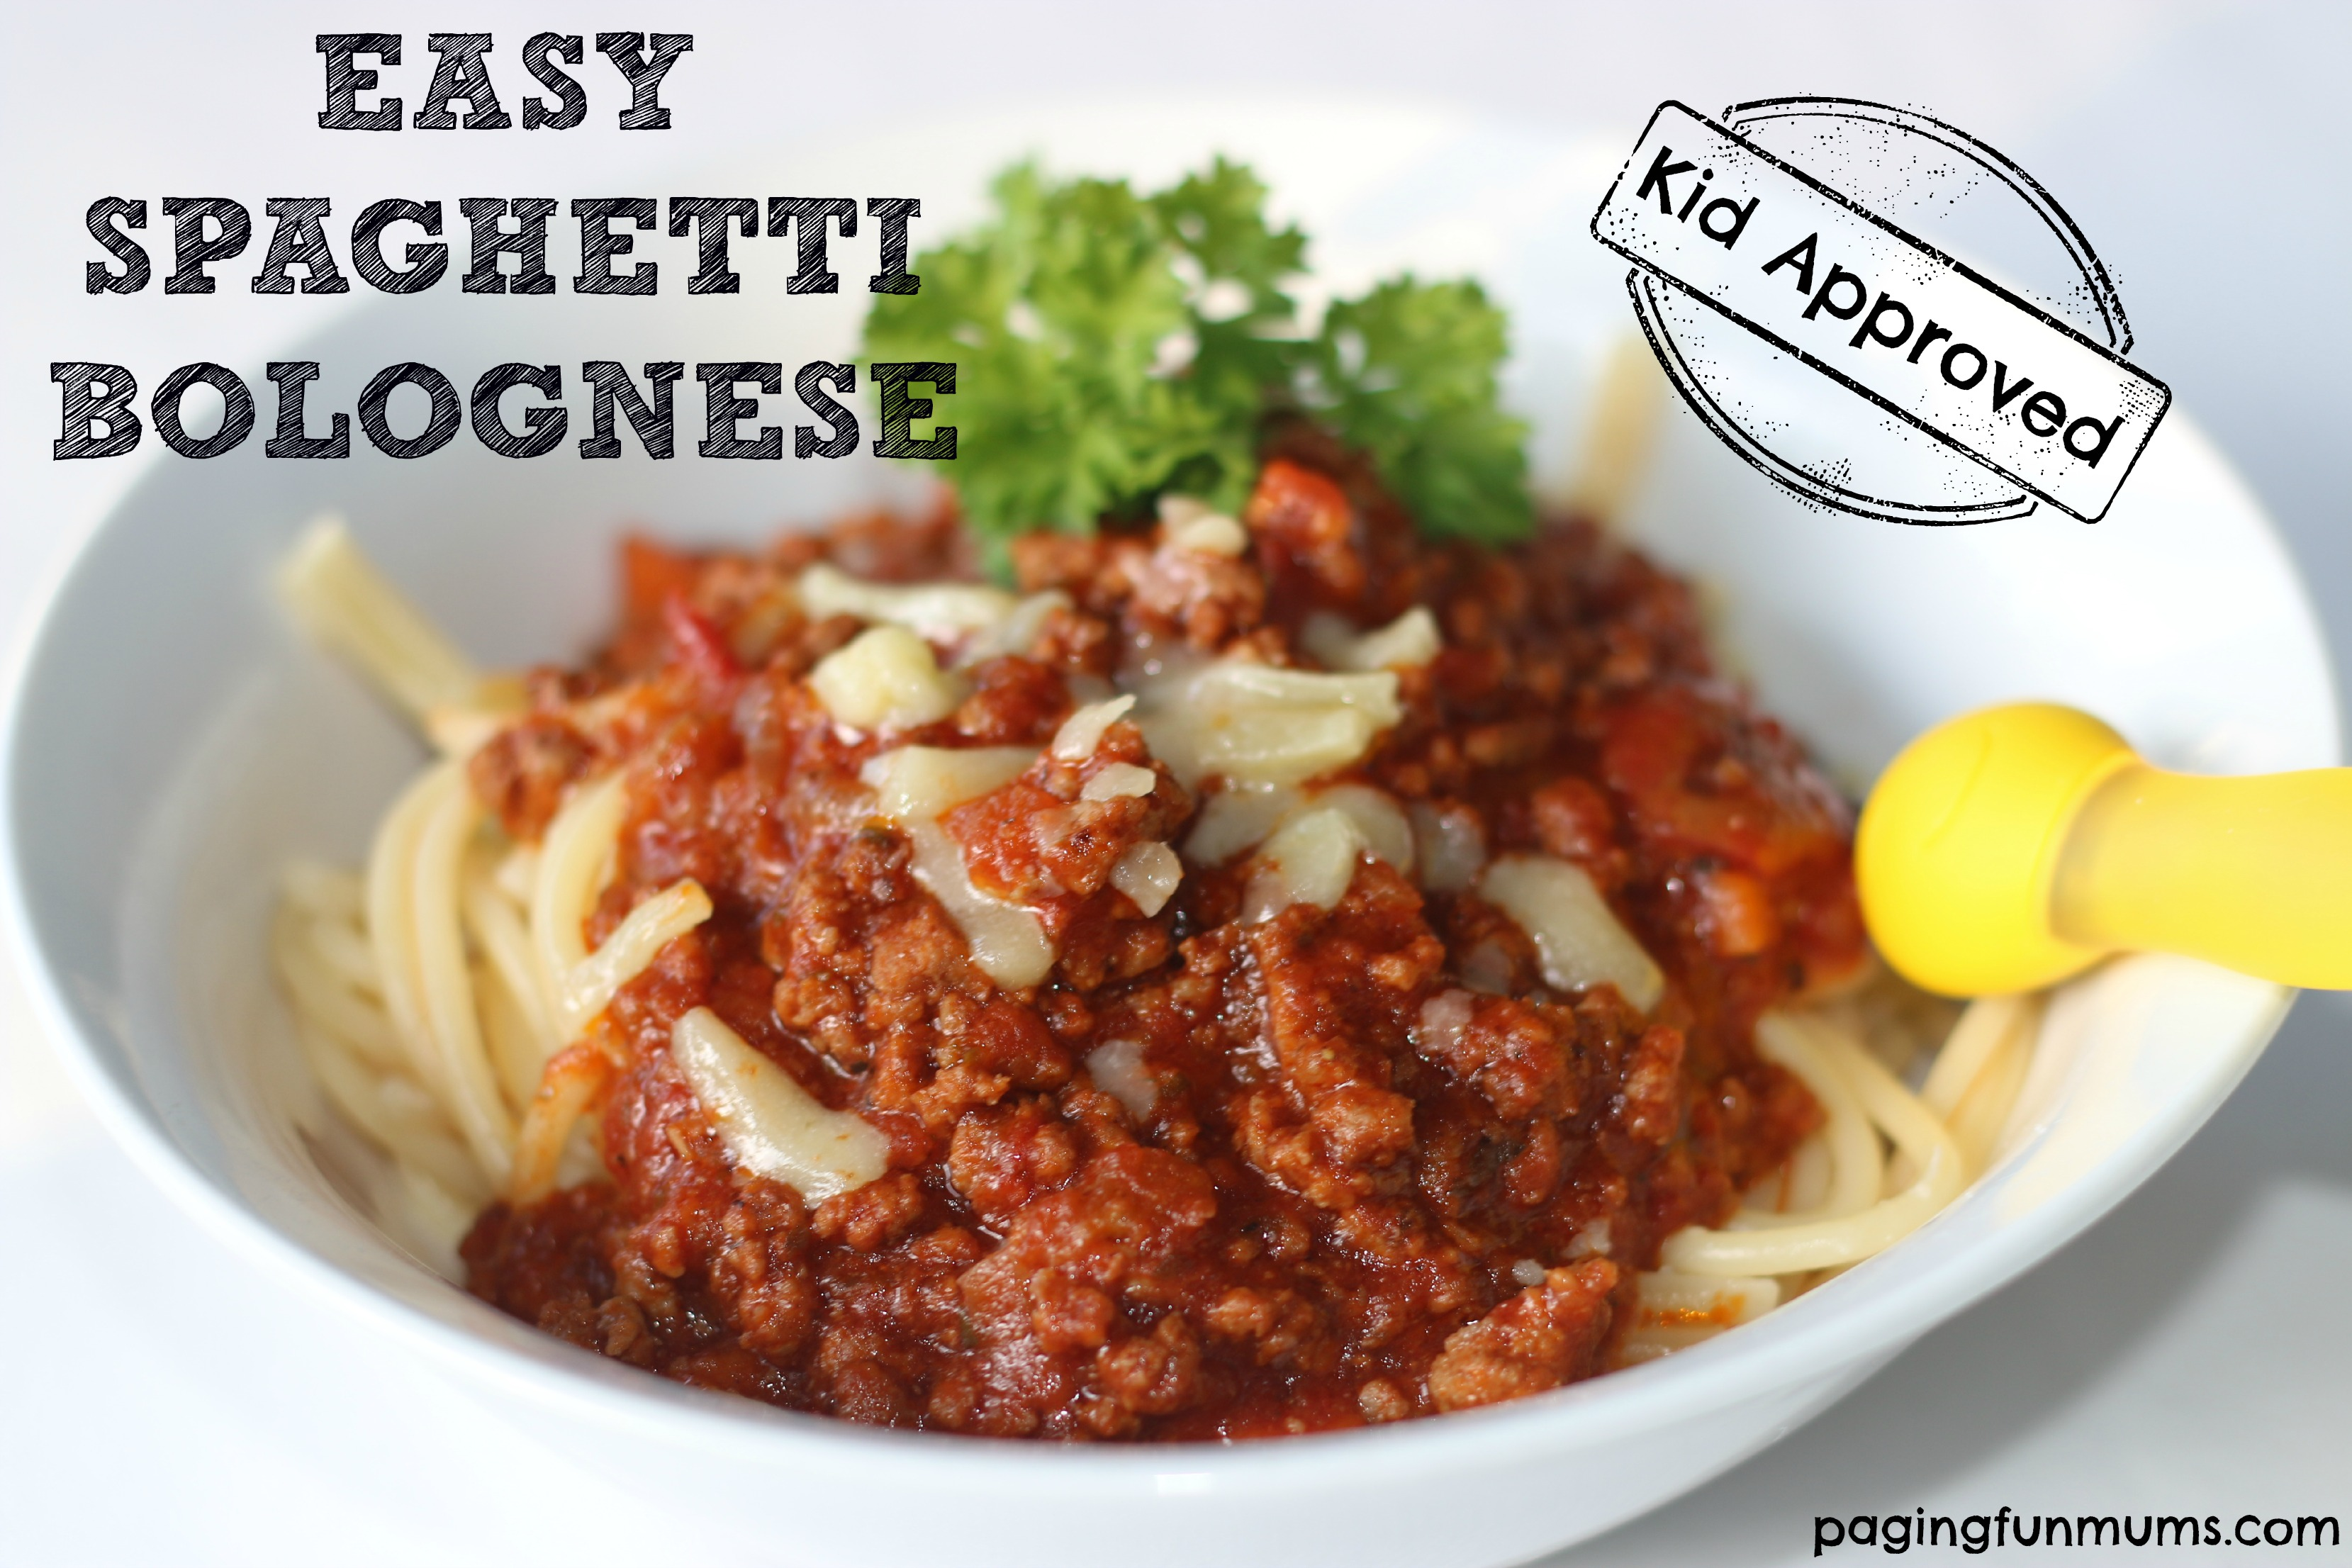 Easy Spaghetti Bolognese Recipe that our familiy loves!